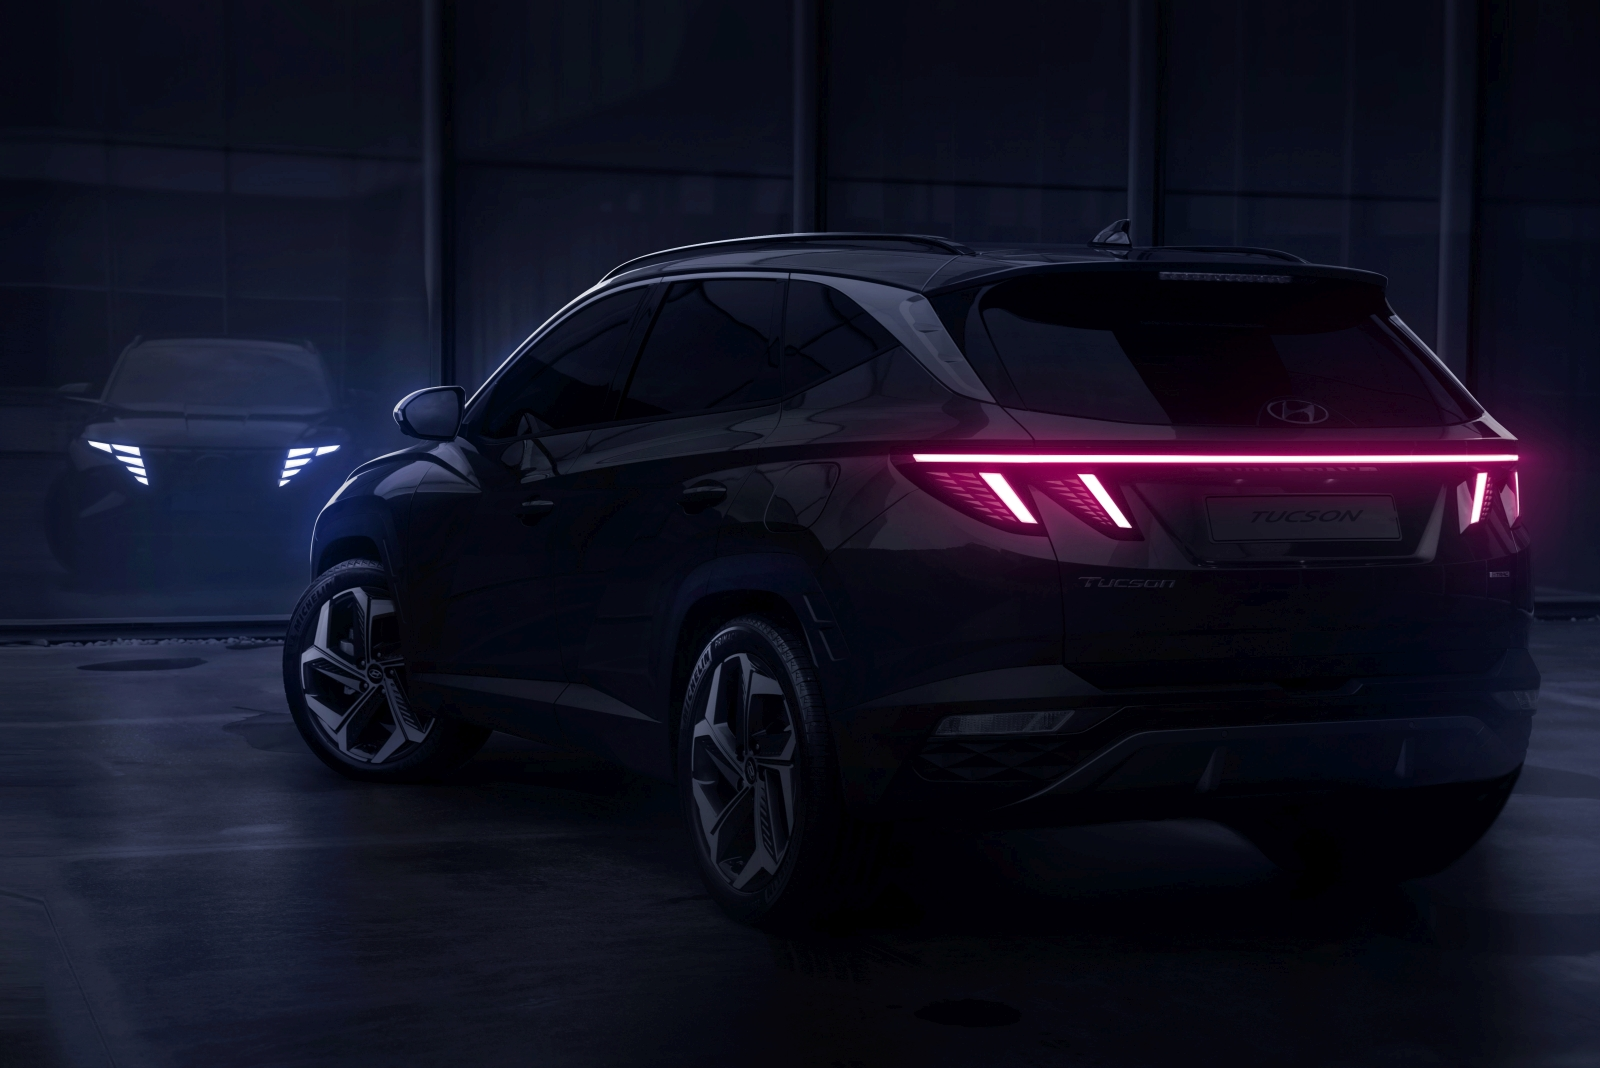 hyundai-tucson-adds-revolutionary-redesign-02